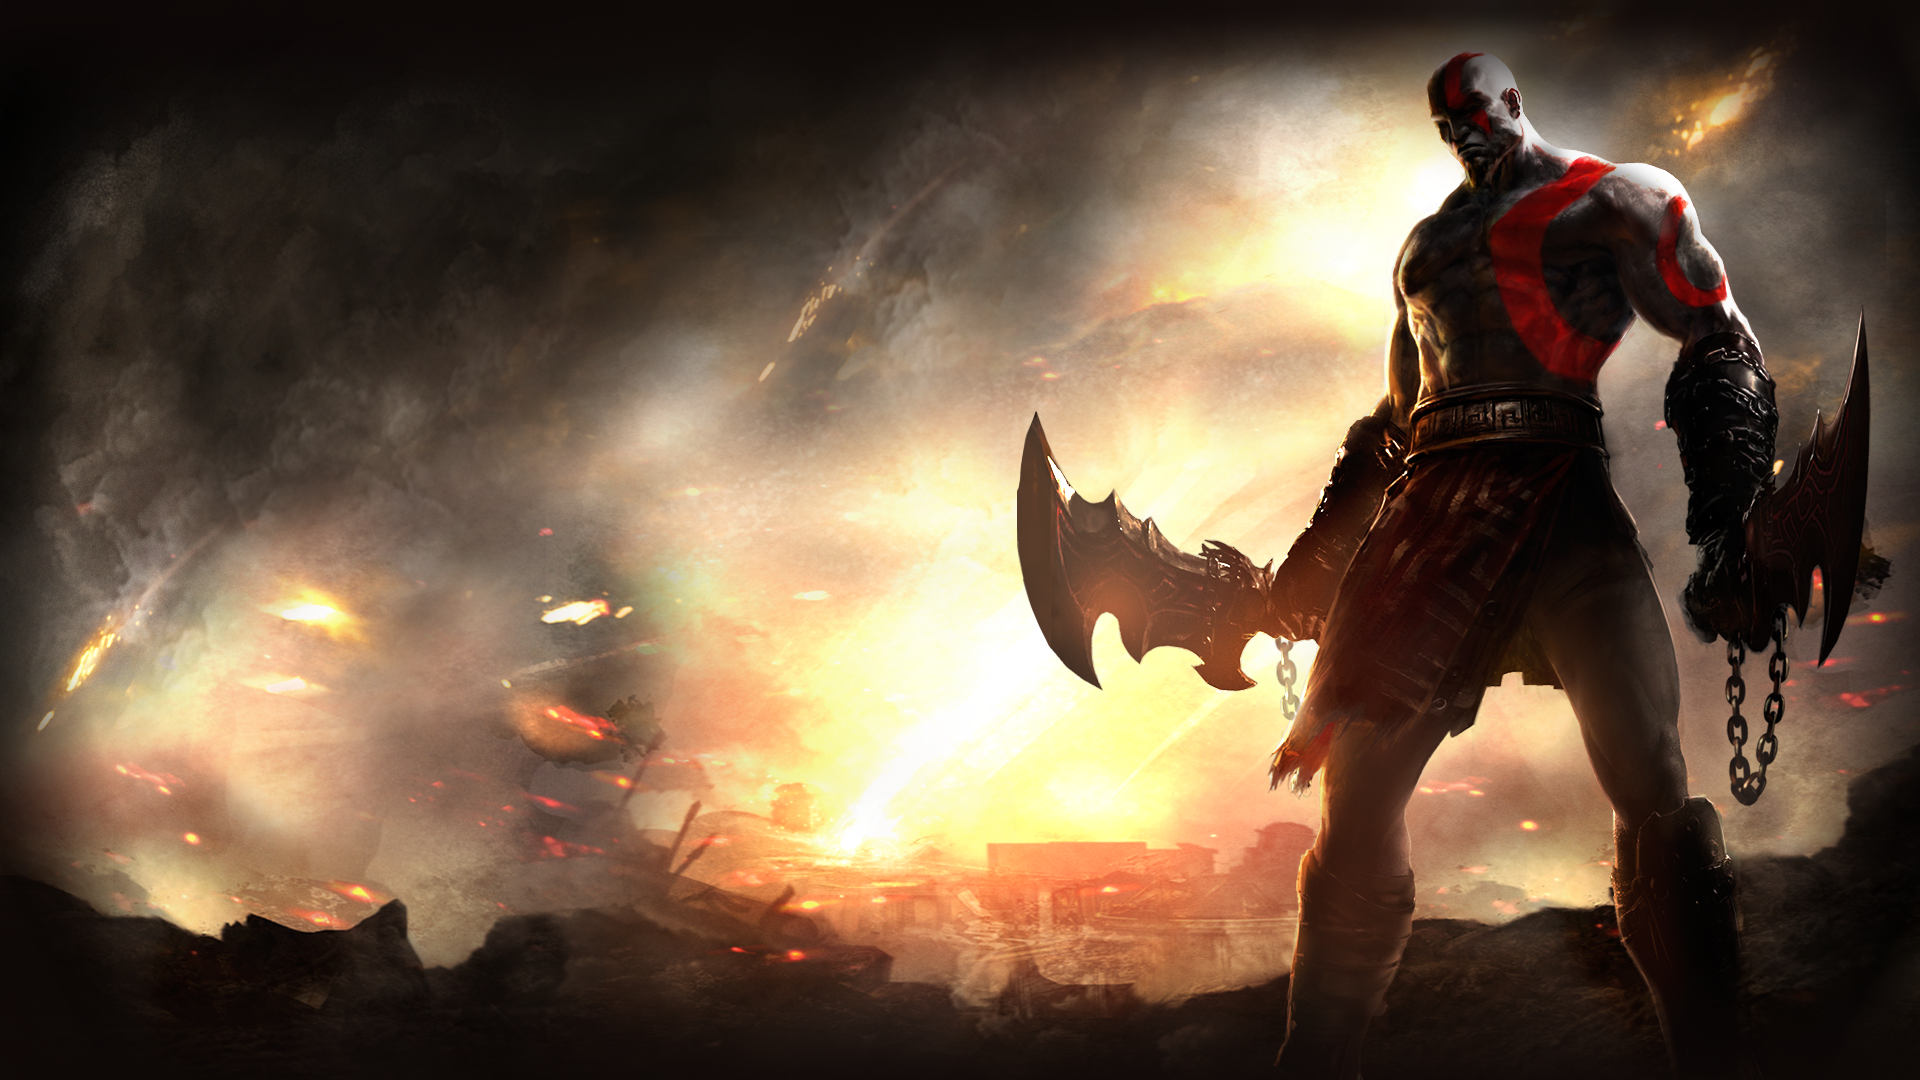 God of war wallpapers high quality download free - Best war wallpapers hd ...